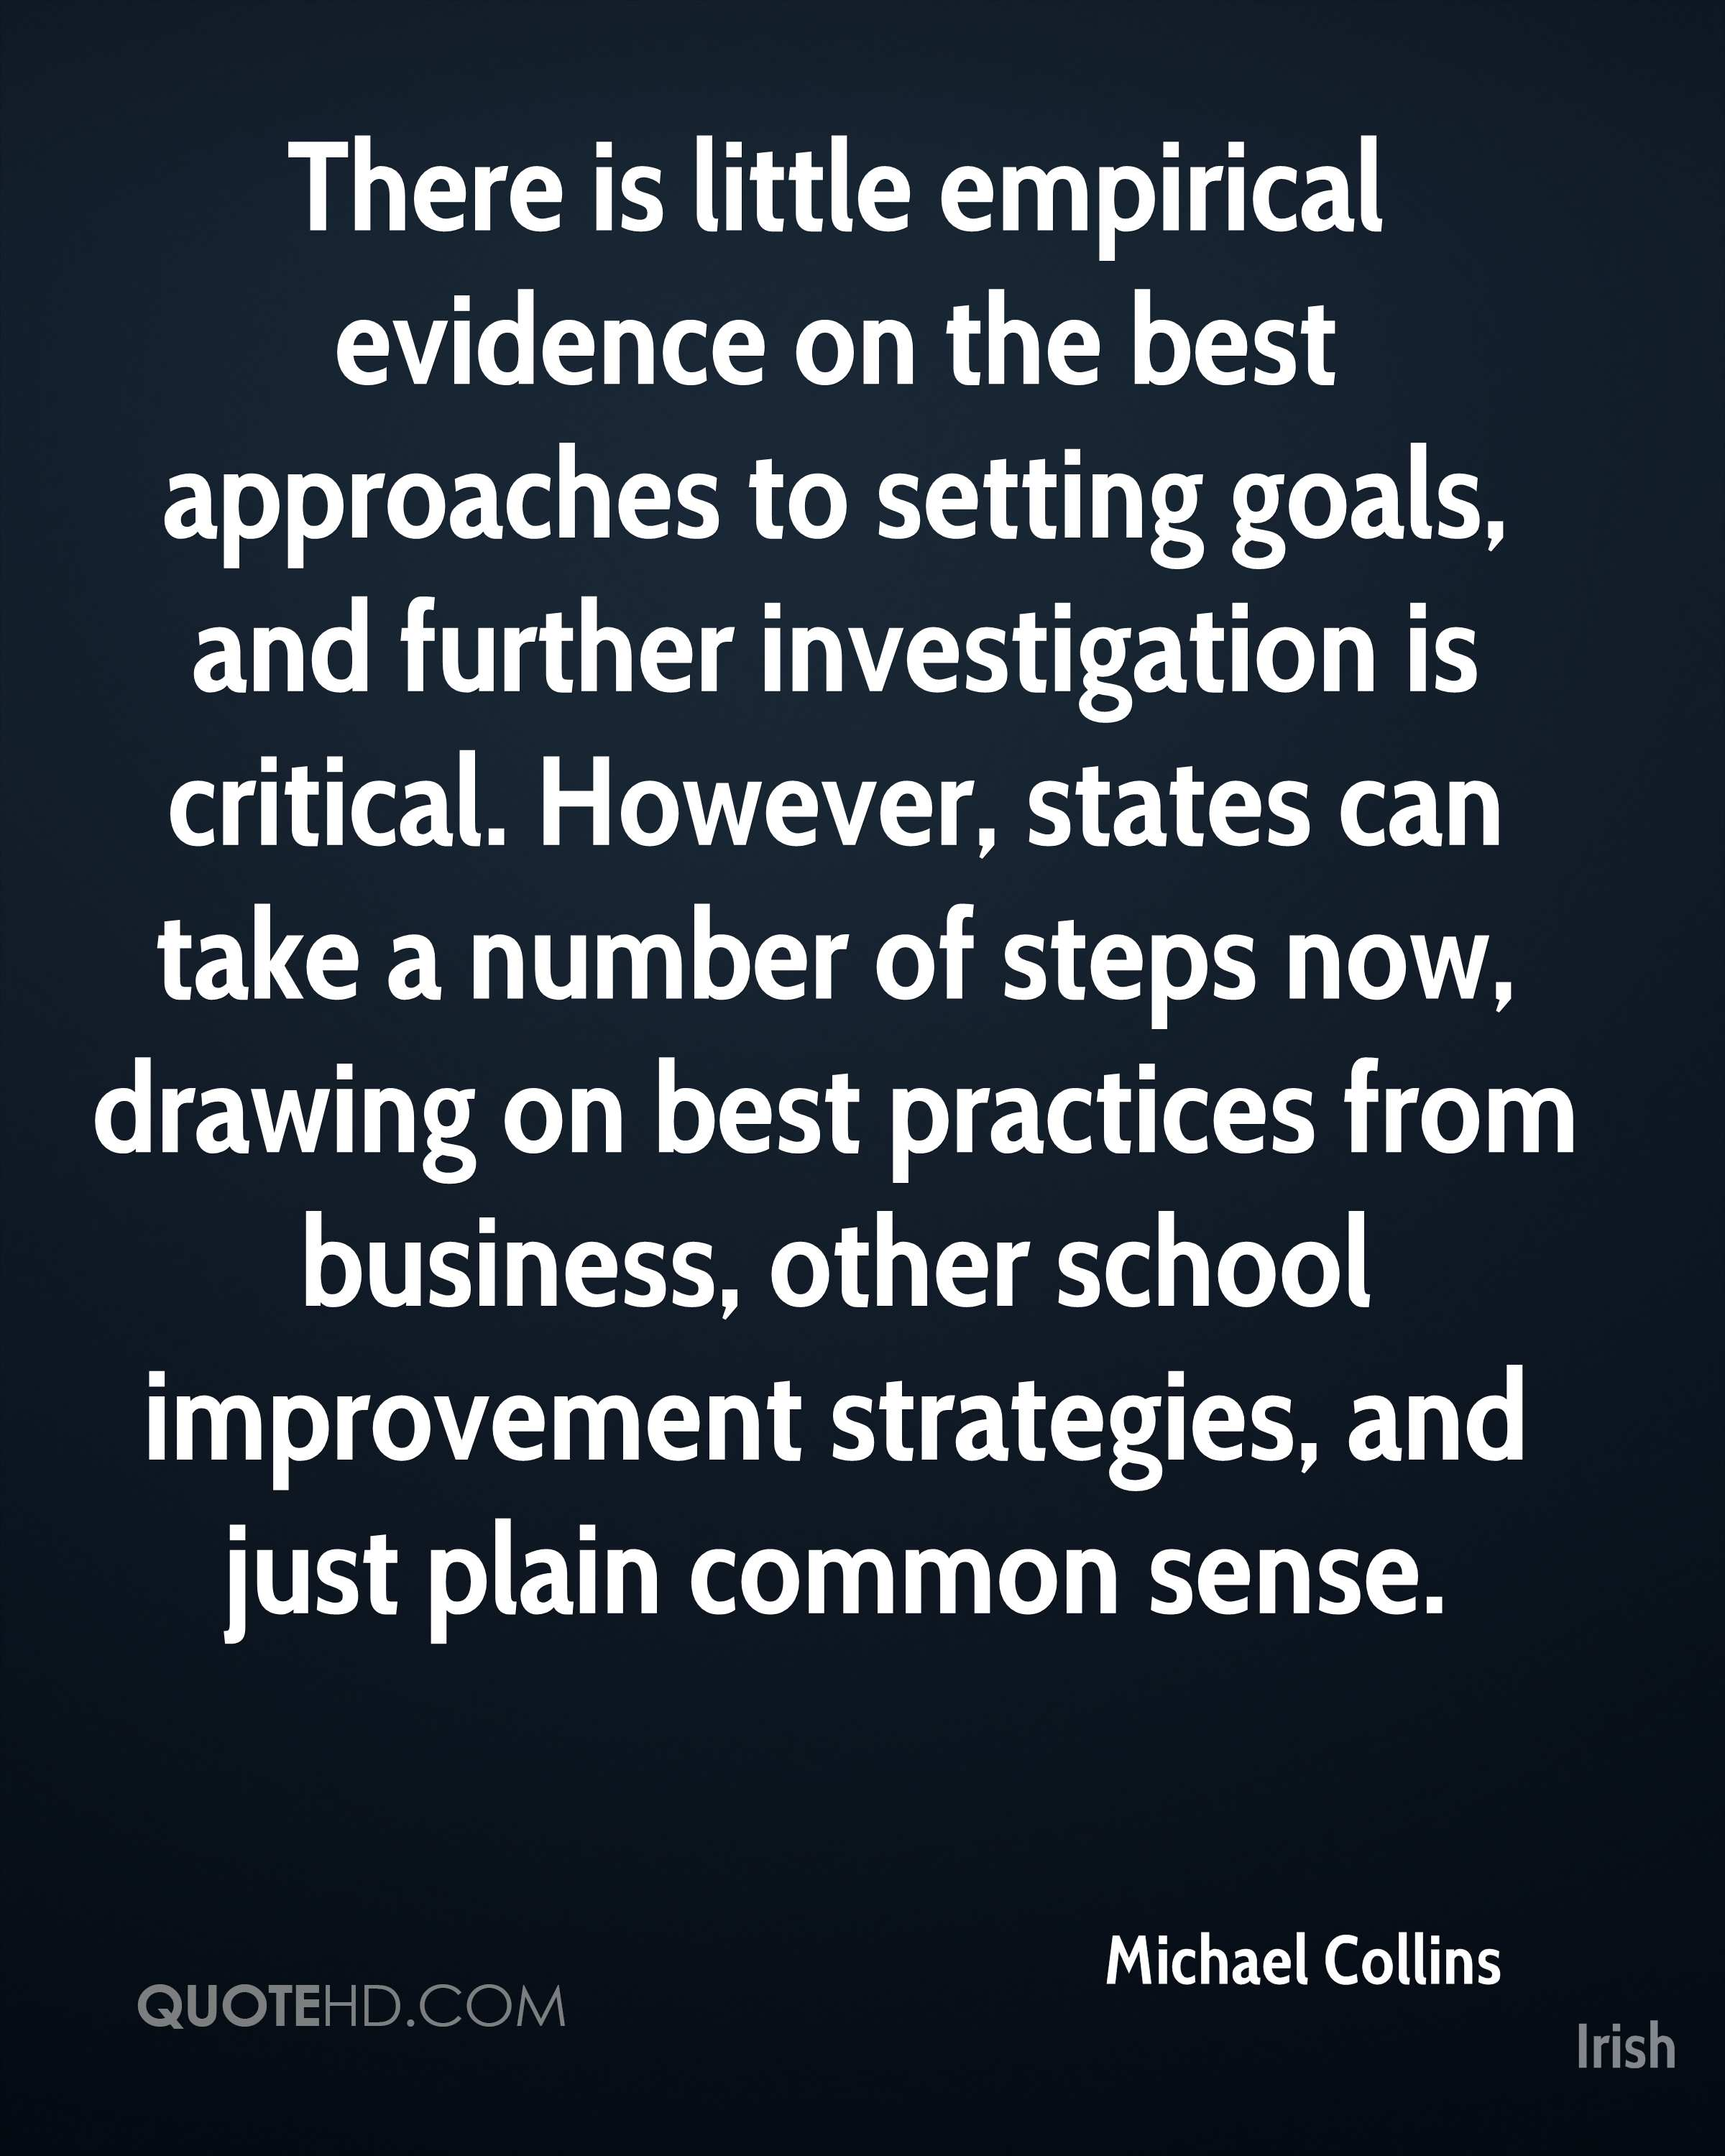 There is little empirical evidence on the best approaches to setting goals, and further investigation is critical. However, states can take a number of steps now, drawing on best practices from business, other school improvement strategies, and just plain common sense.